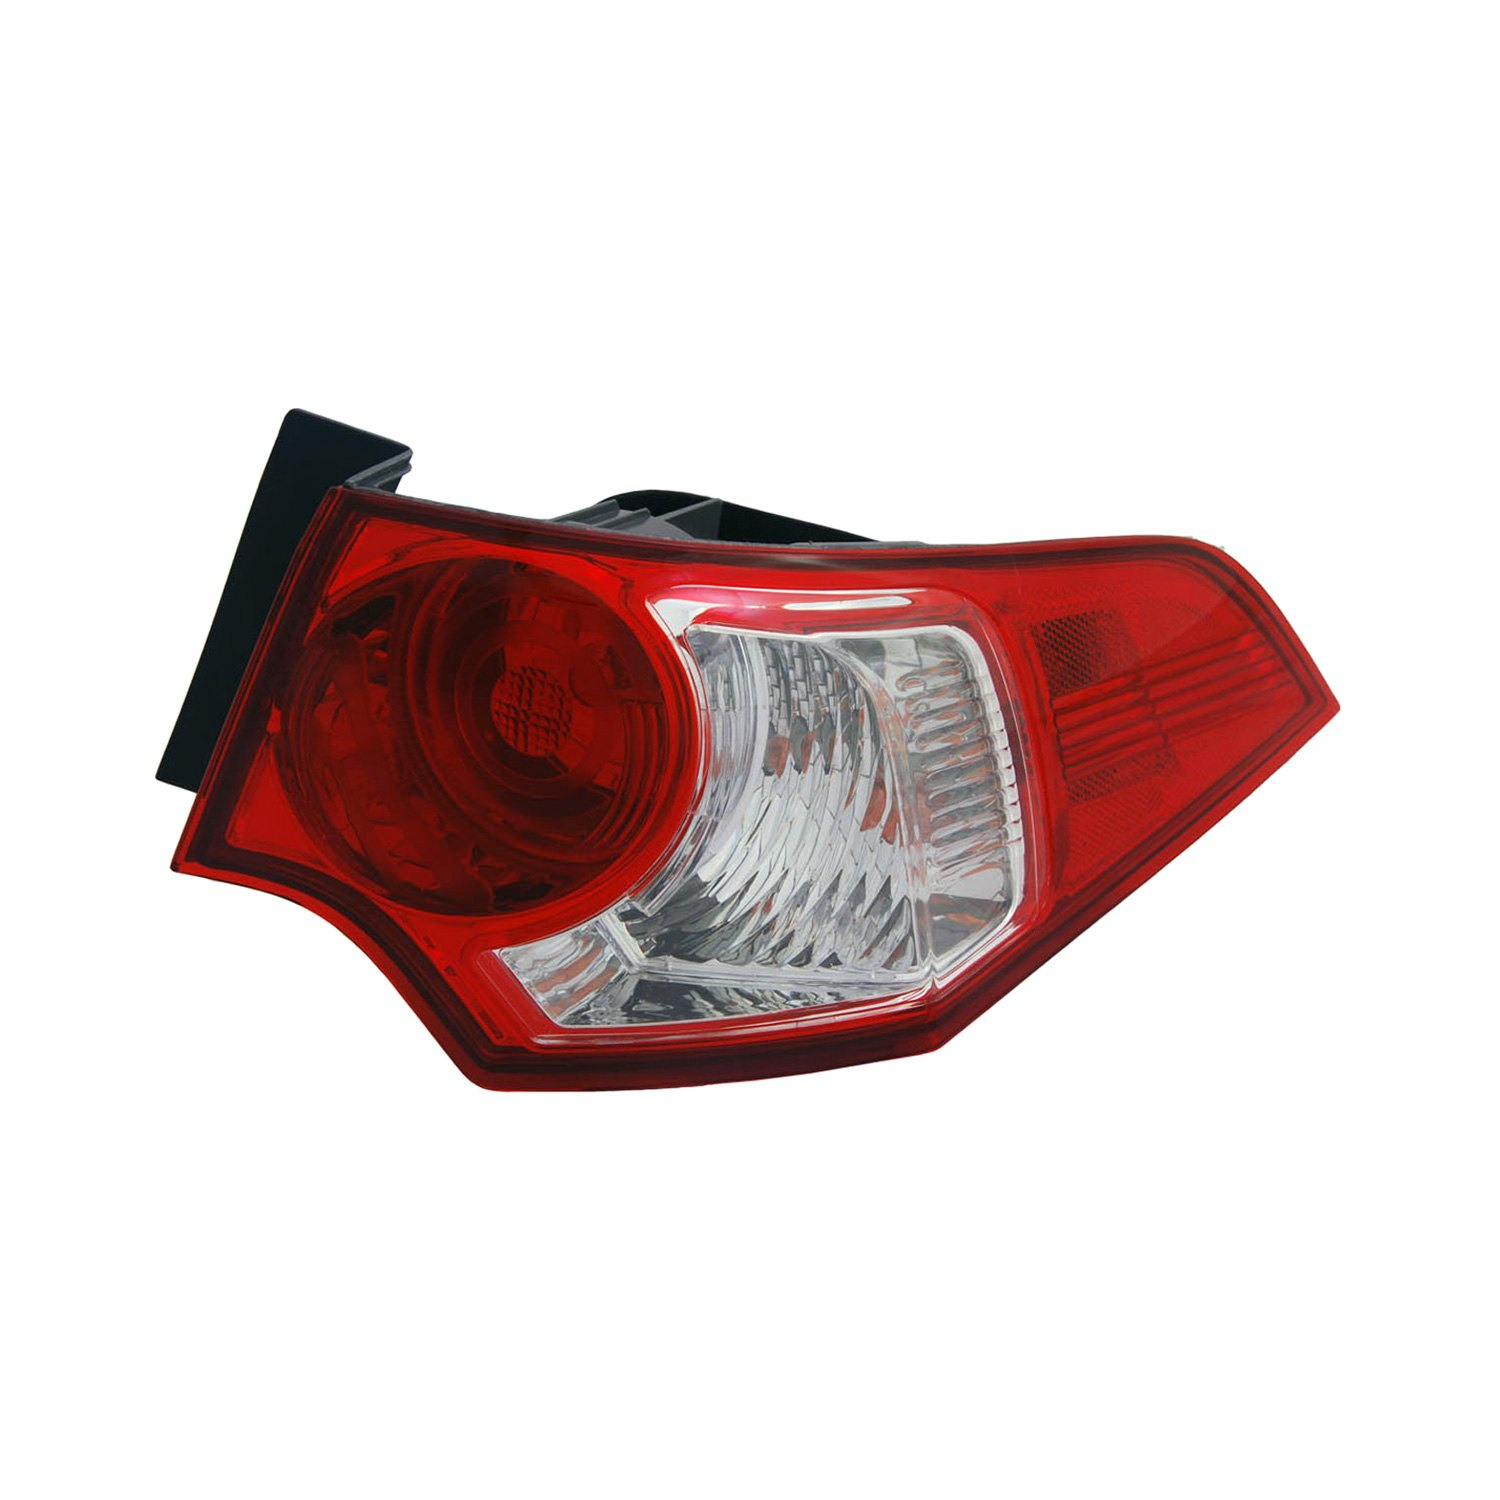 K Metal Acura Tsx Sedan 2009 2010 Replacement Tail Light